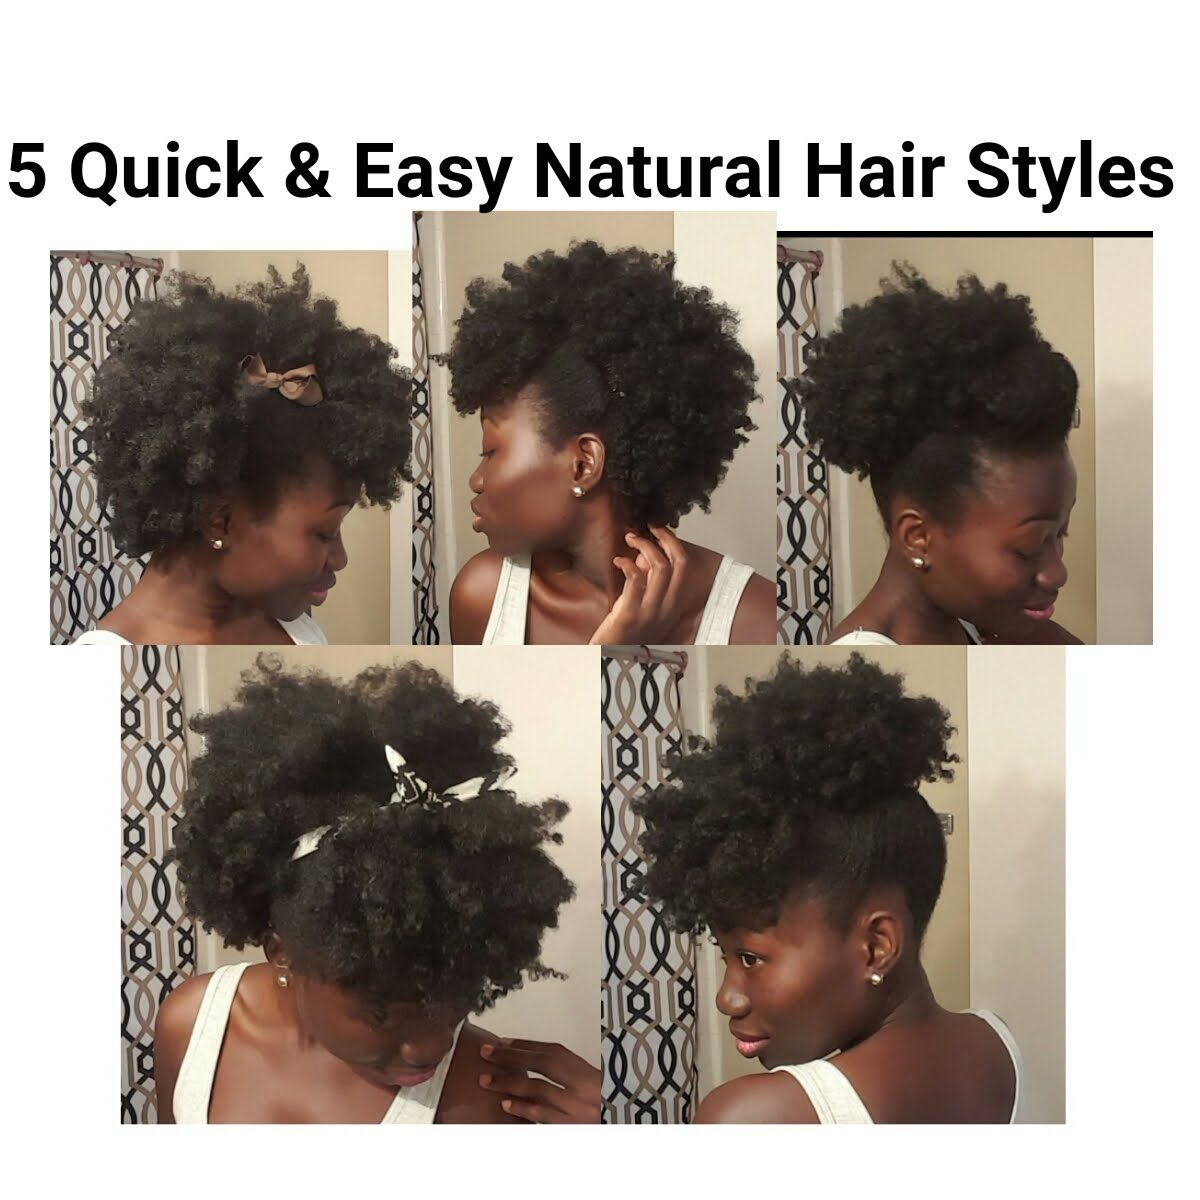 5 quick & easy natural hair styles